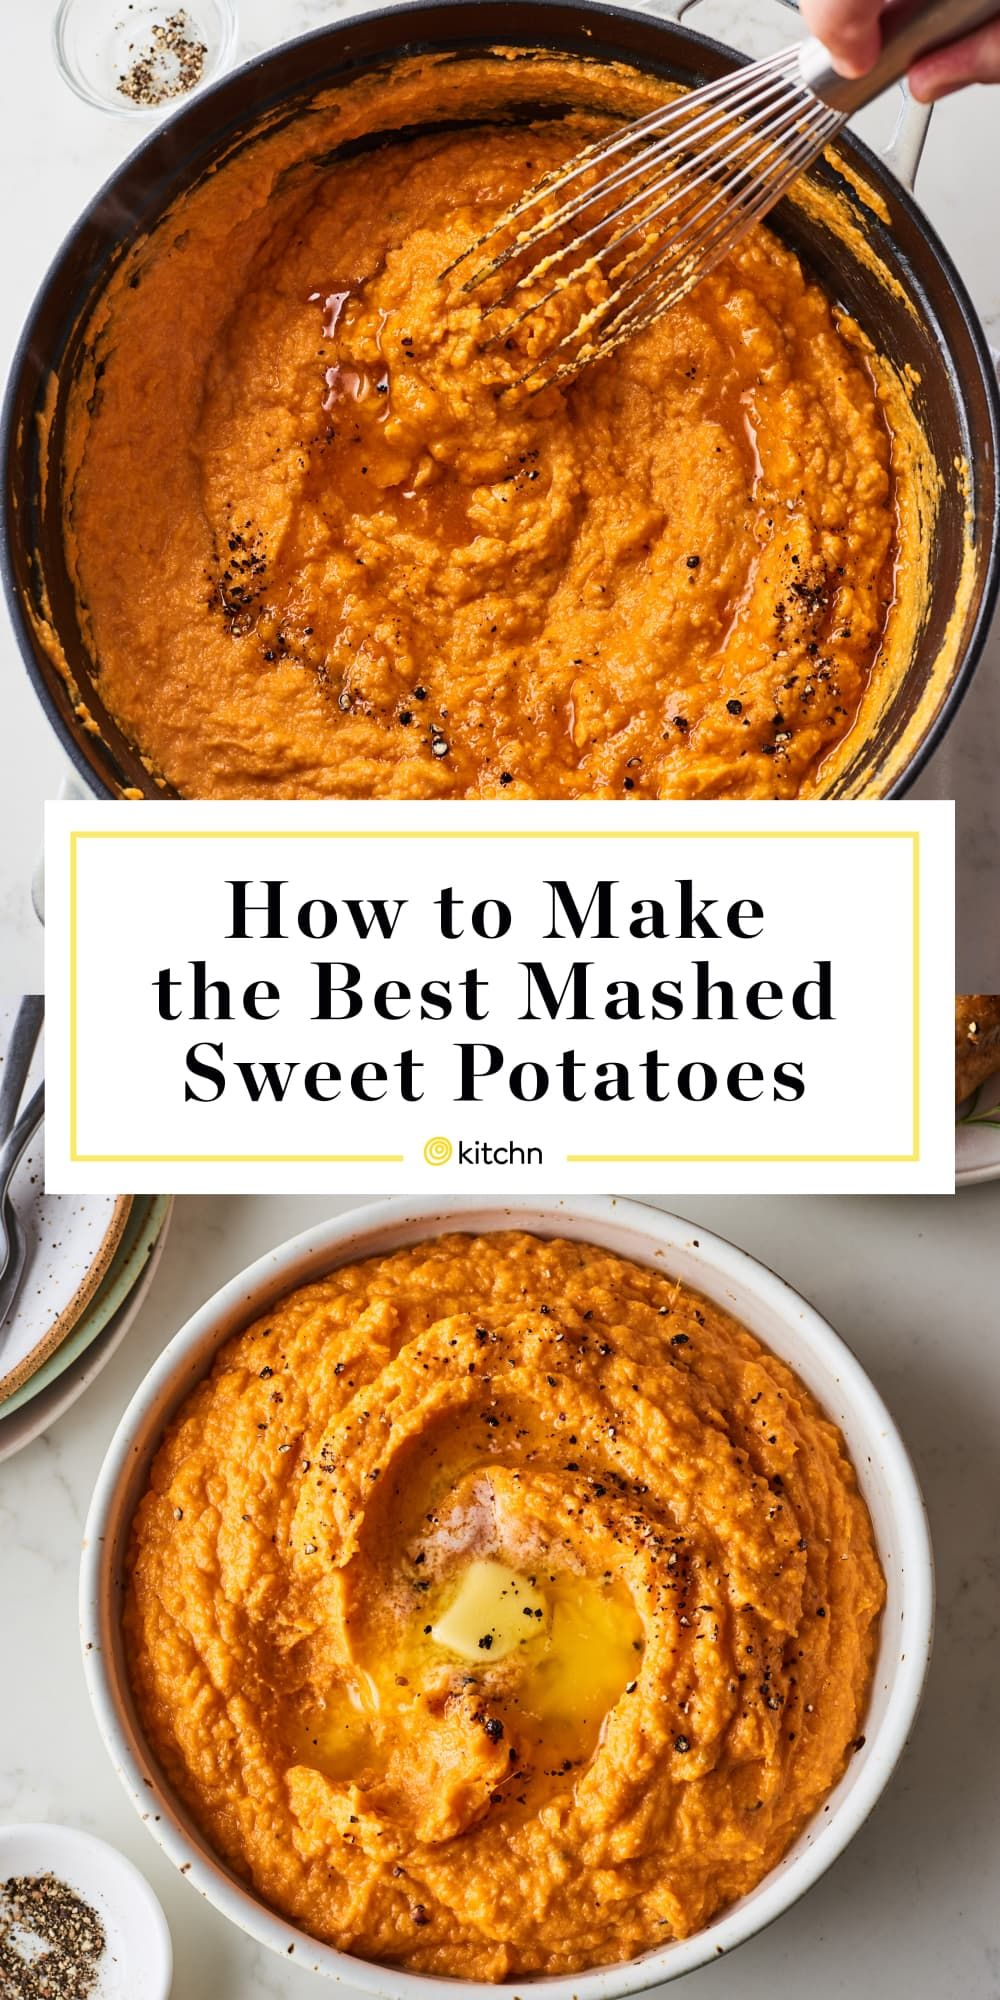 How To Make the Best Mashed Sweet Potatoes